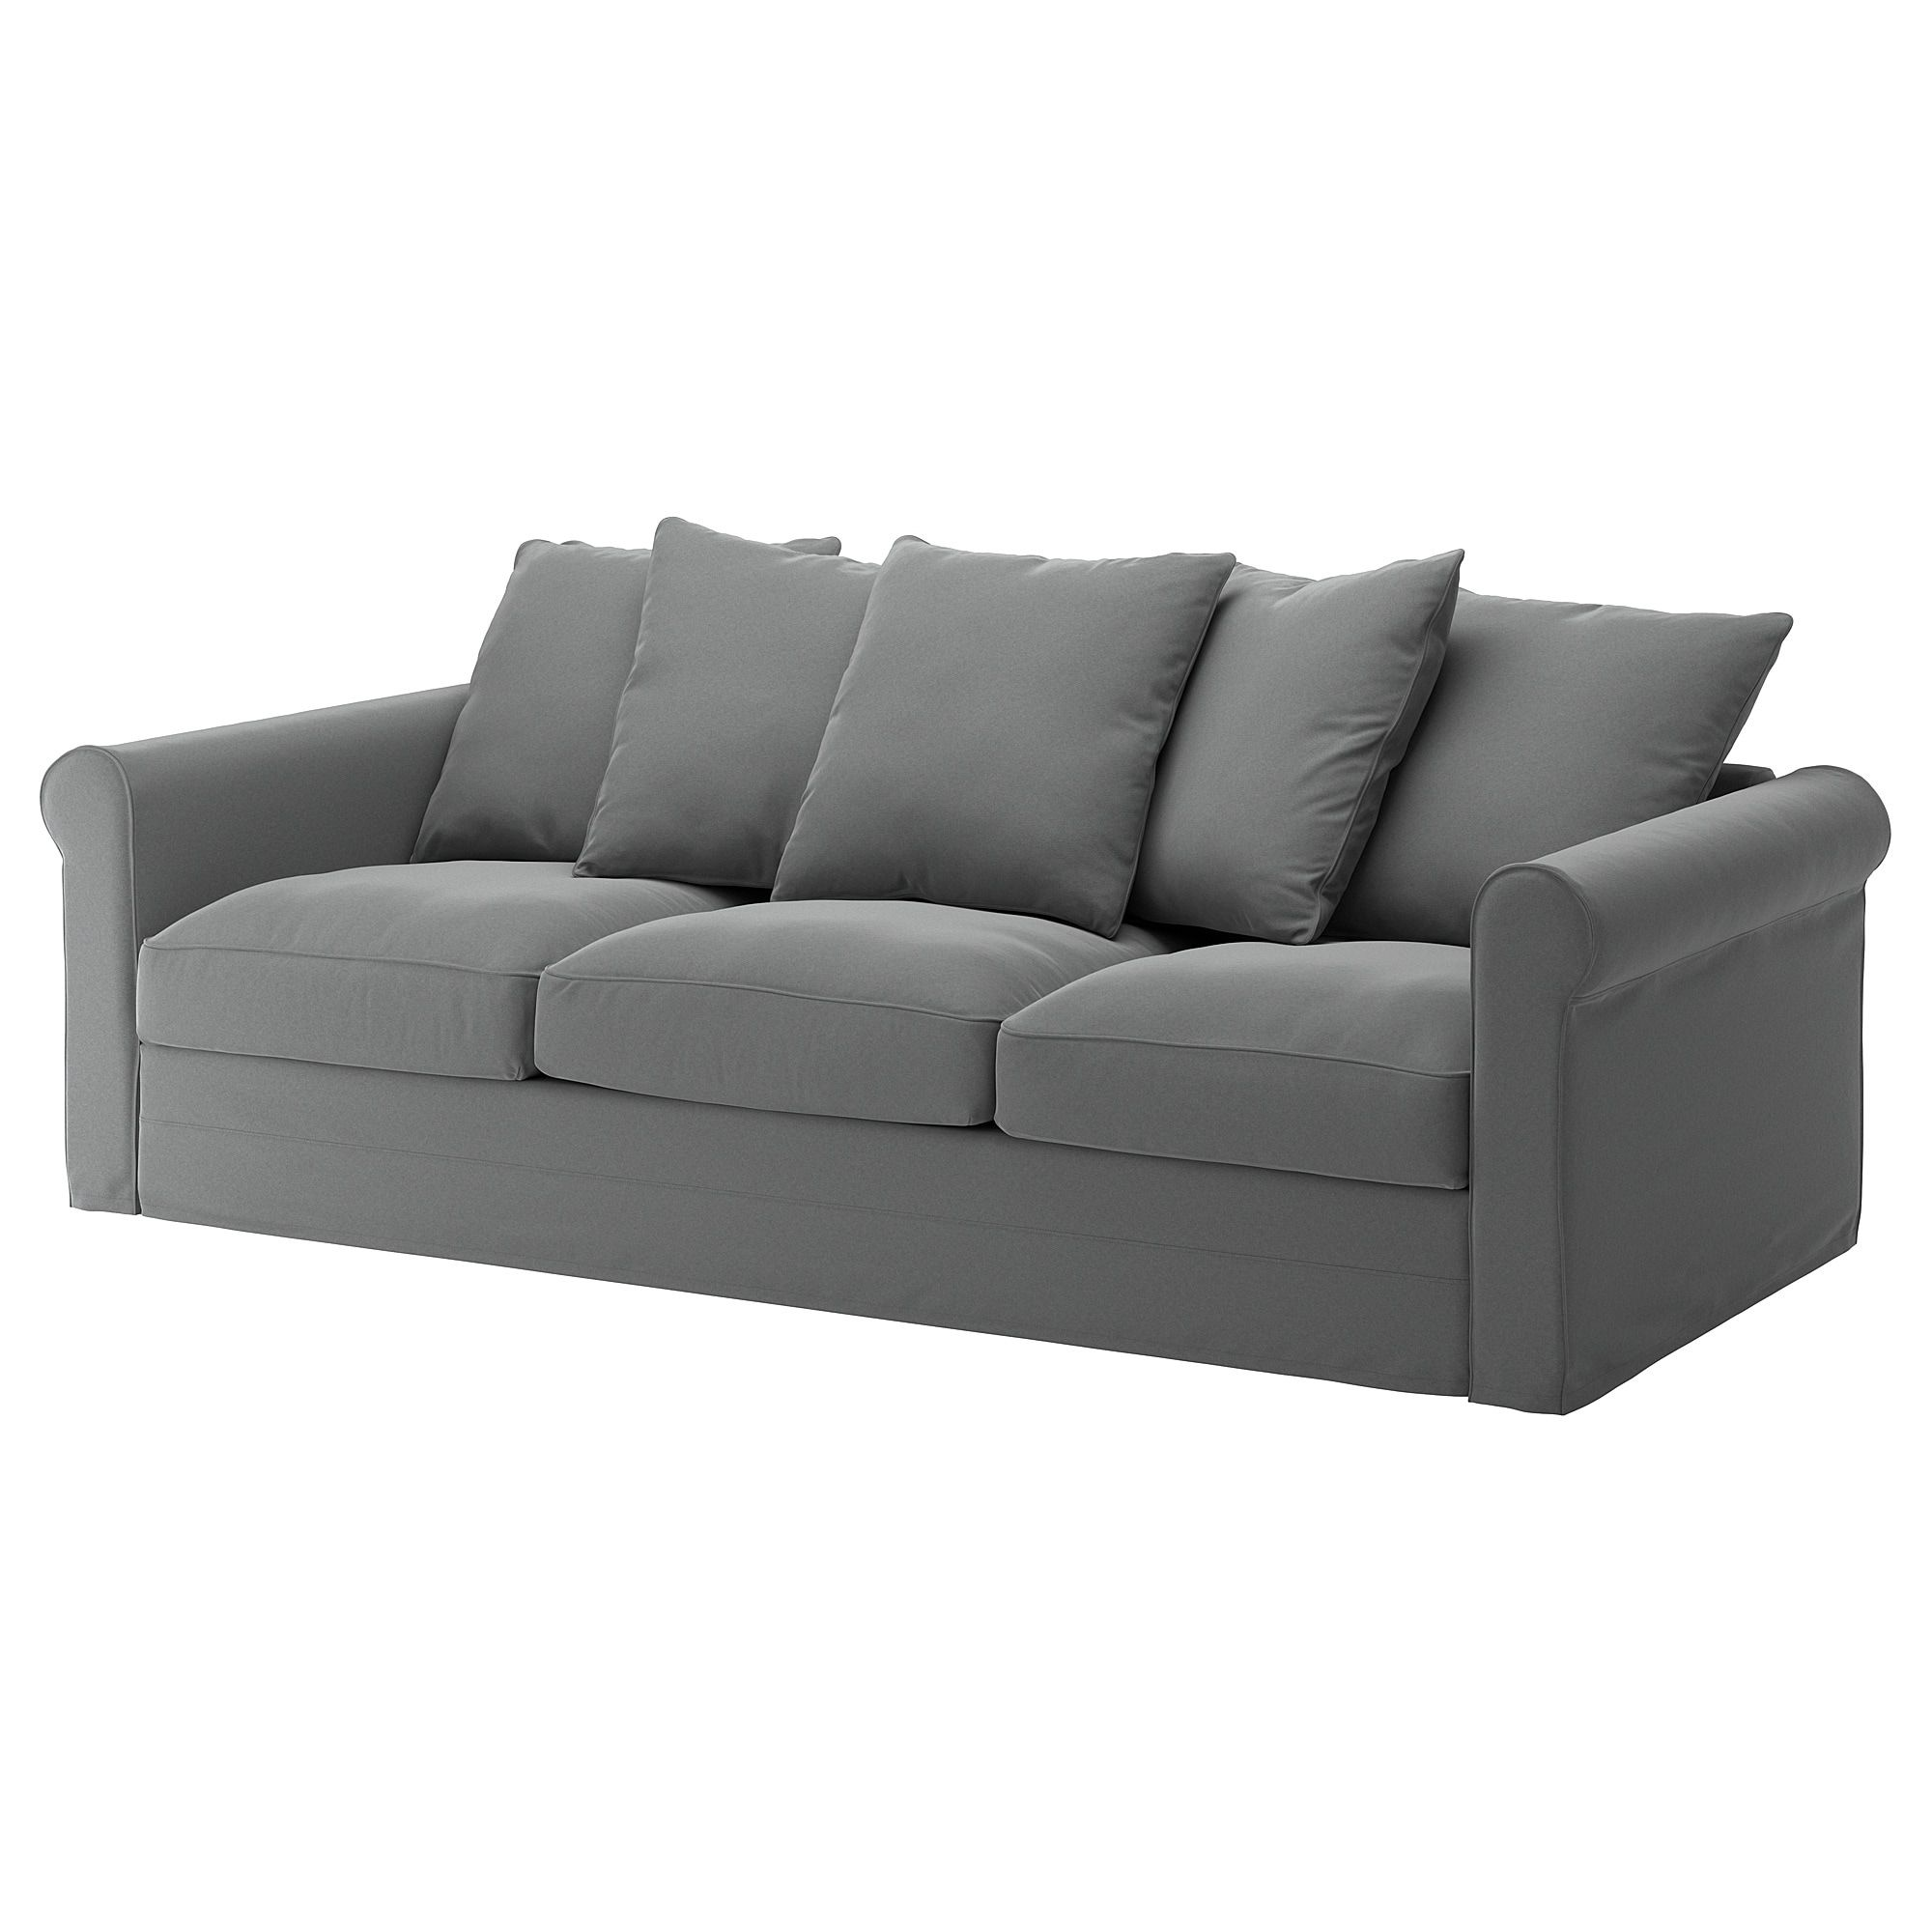 Canape Ikea Backabro 3 Places GrÖnlid Sofa Ljungen Medium Gray Chez Moi Sofa Ikea Sofa